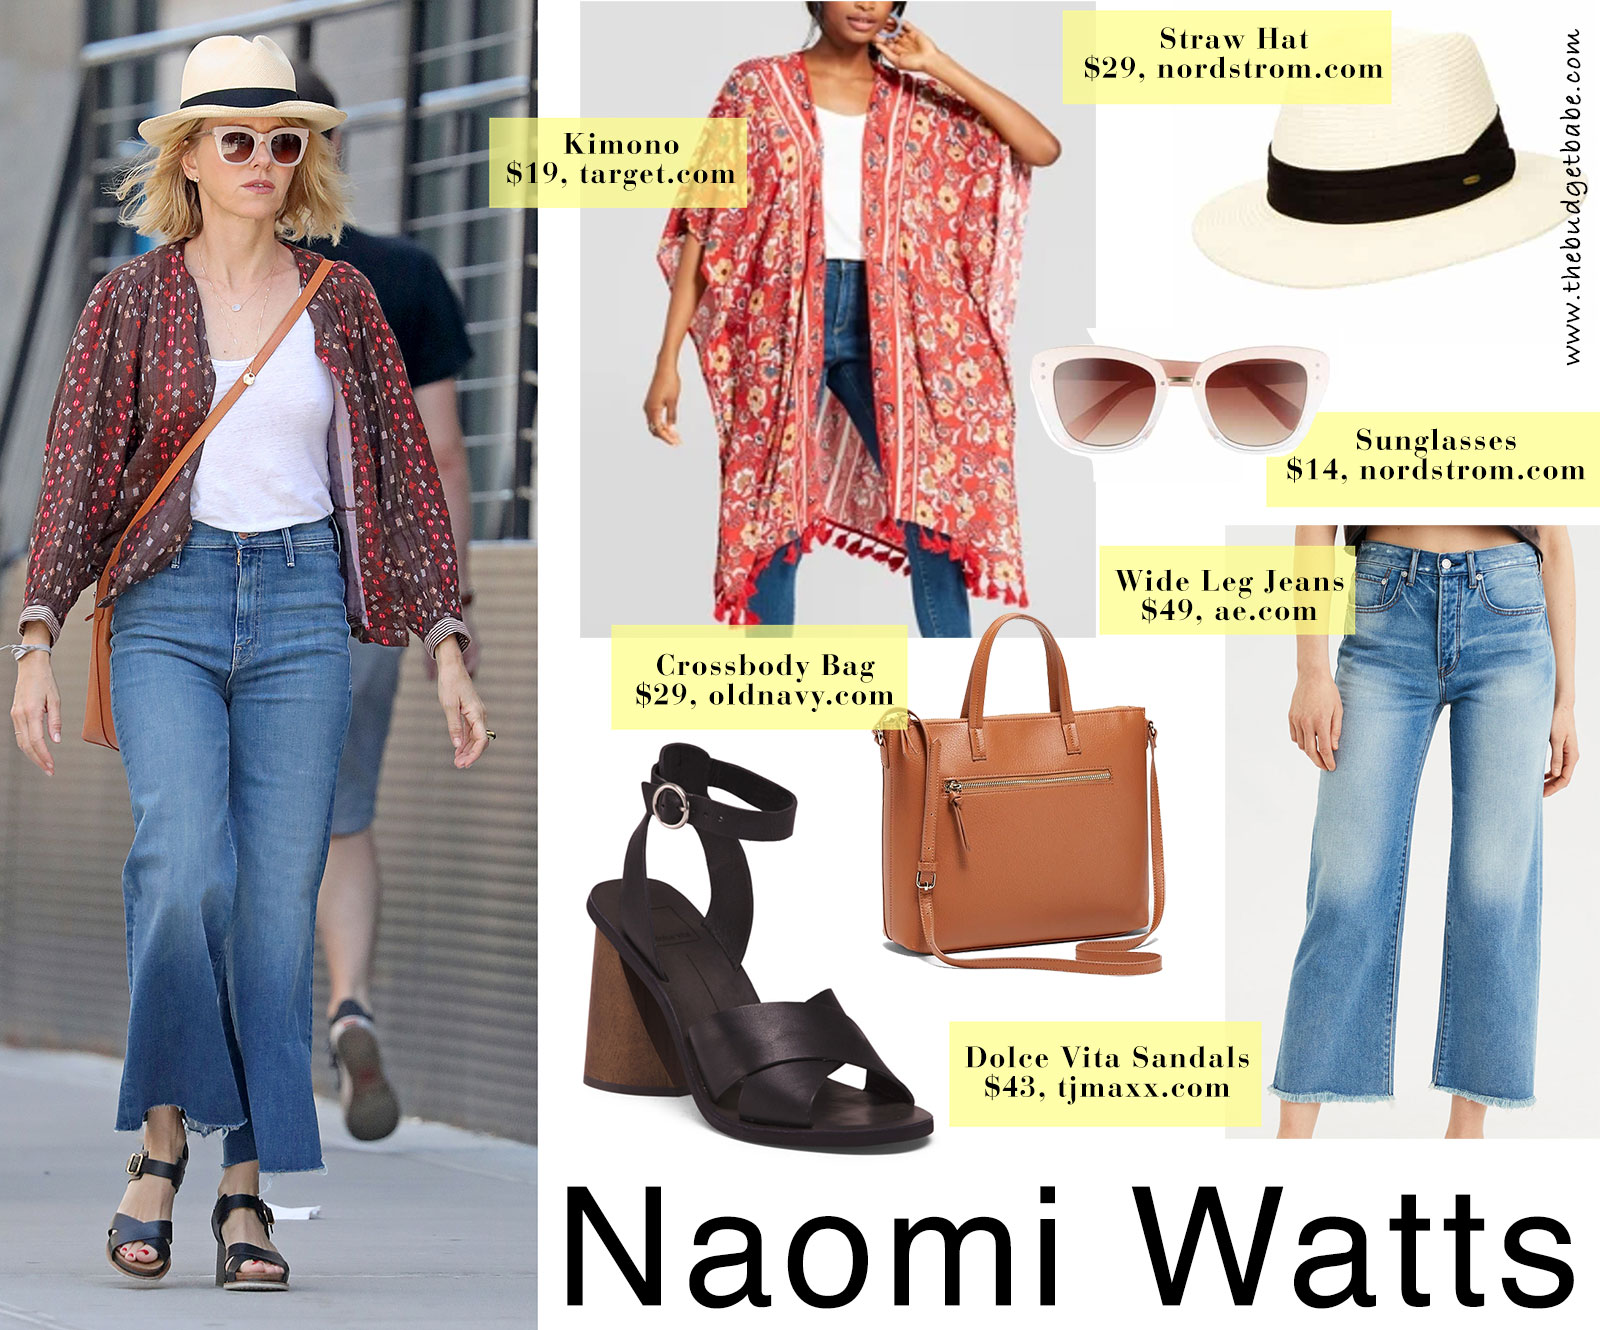 Naomi Watts' print jacket and wide leg pants look for less